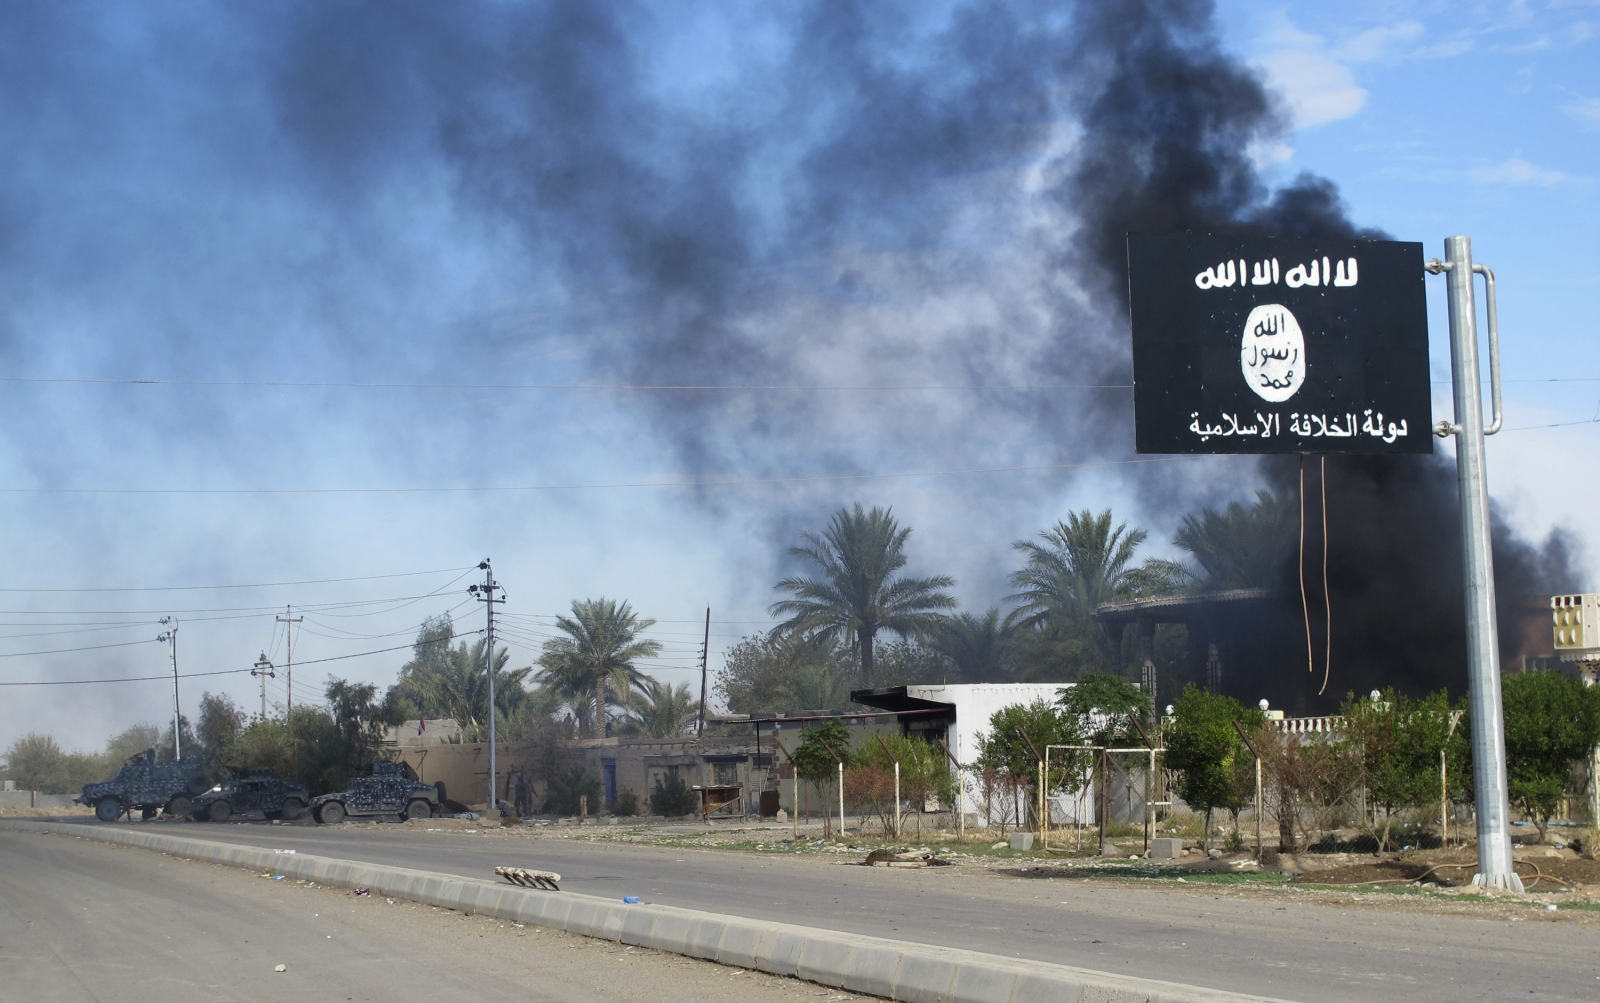 Isis flag flies over Saadiya, Iraq